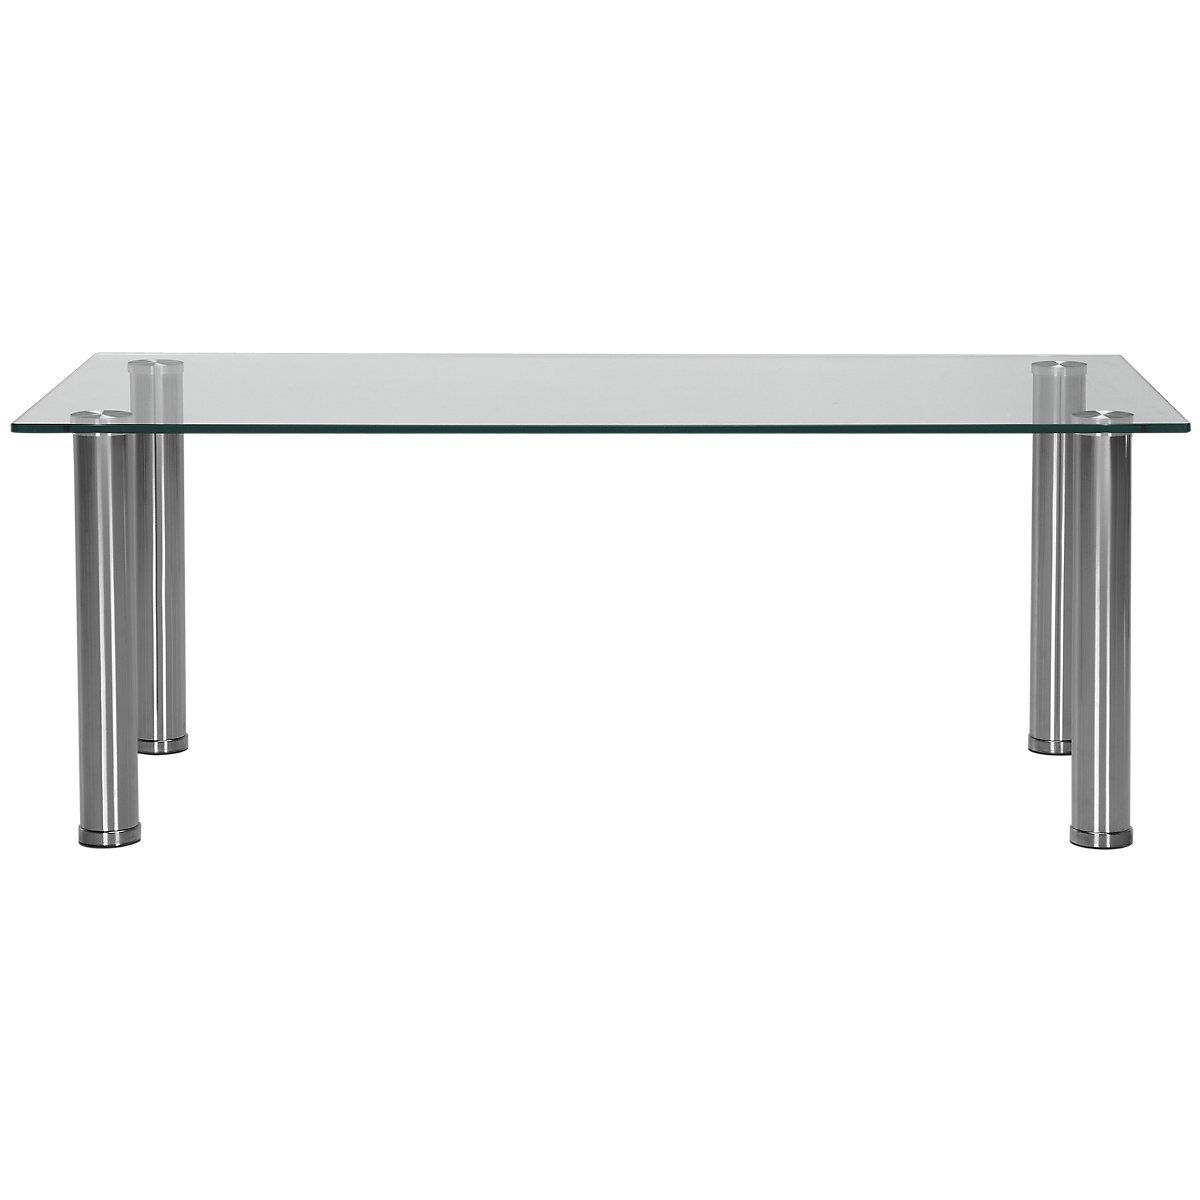 Napoli Glass Silver Rectangular Coffee Table